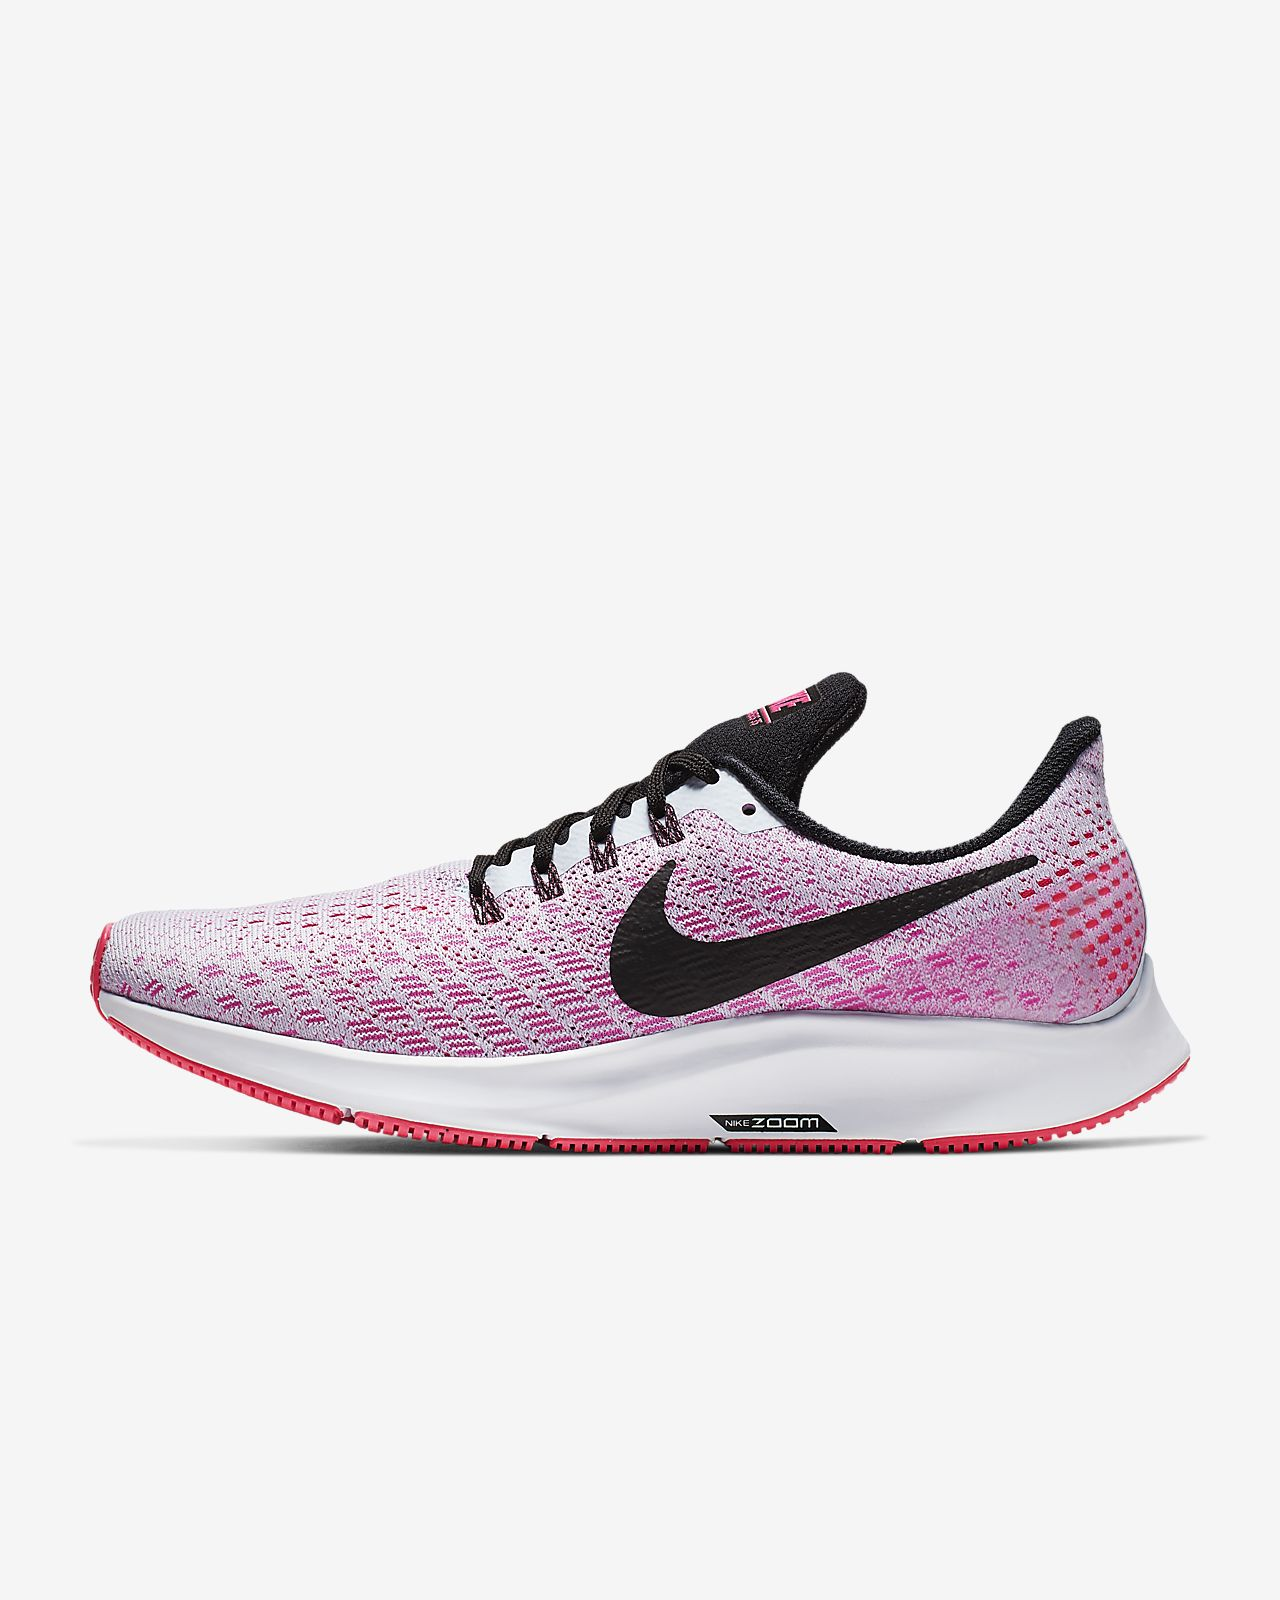 new product b9cfc 9bffc ... Chaussure de running Nike Air Zoom Pegasus 35 pour Femme